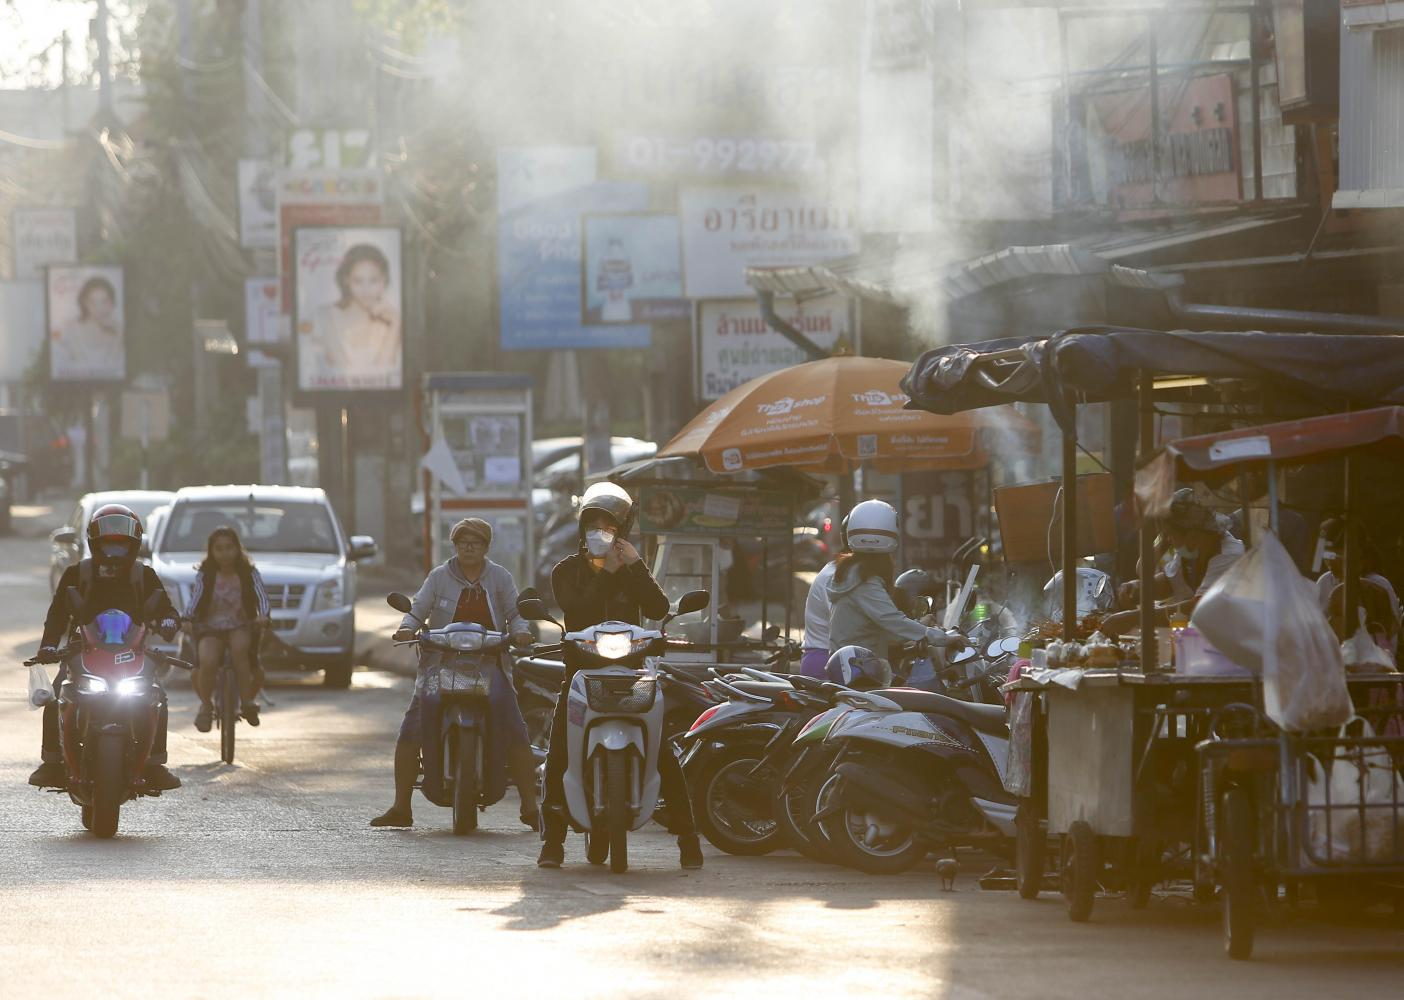 DAILY GRIND: Residents brave the dust and fumes on a hazy morning in Chiang Mai. PM2.5 remained present in the air at unsafe levels in many parts of the North on Saturday.